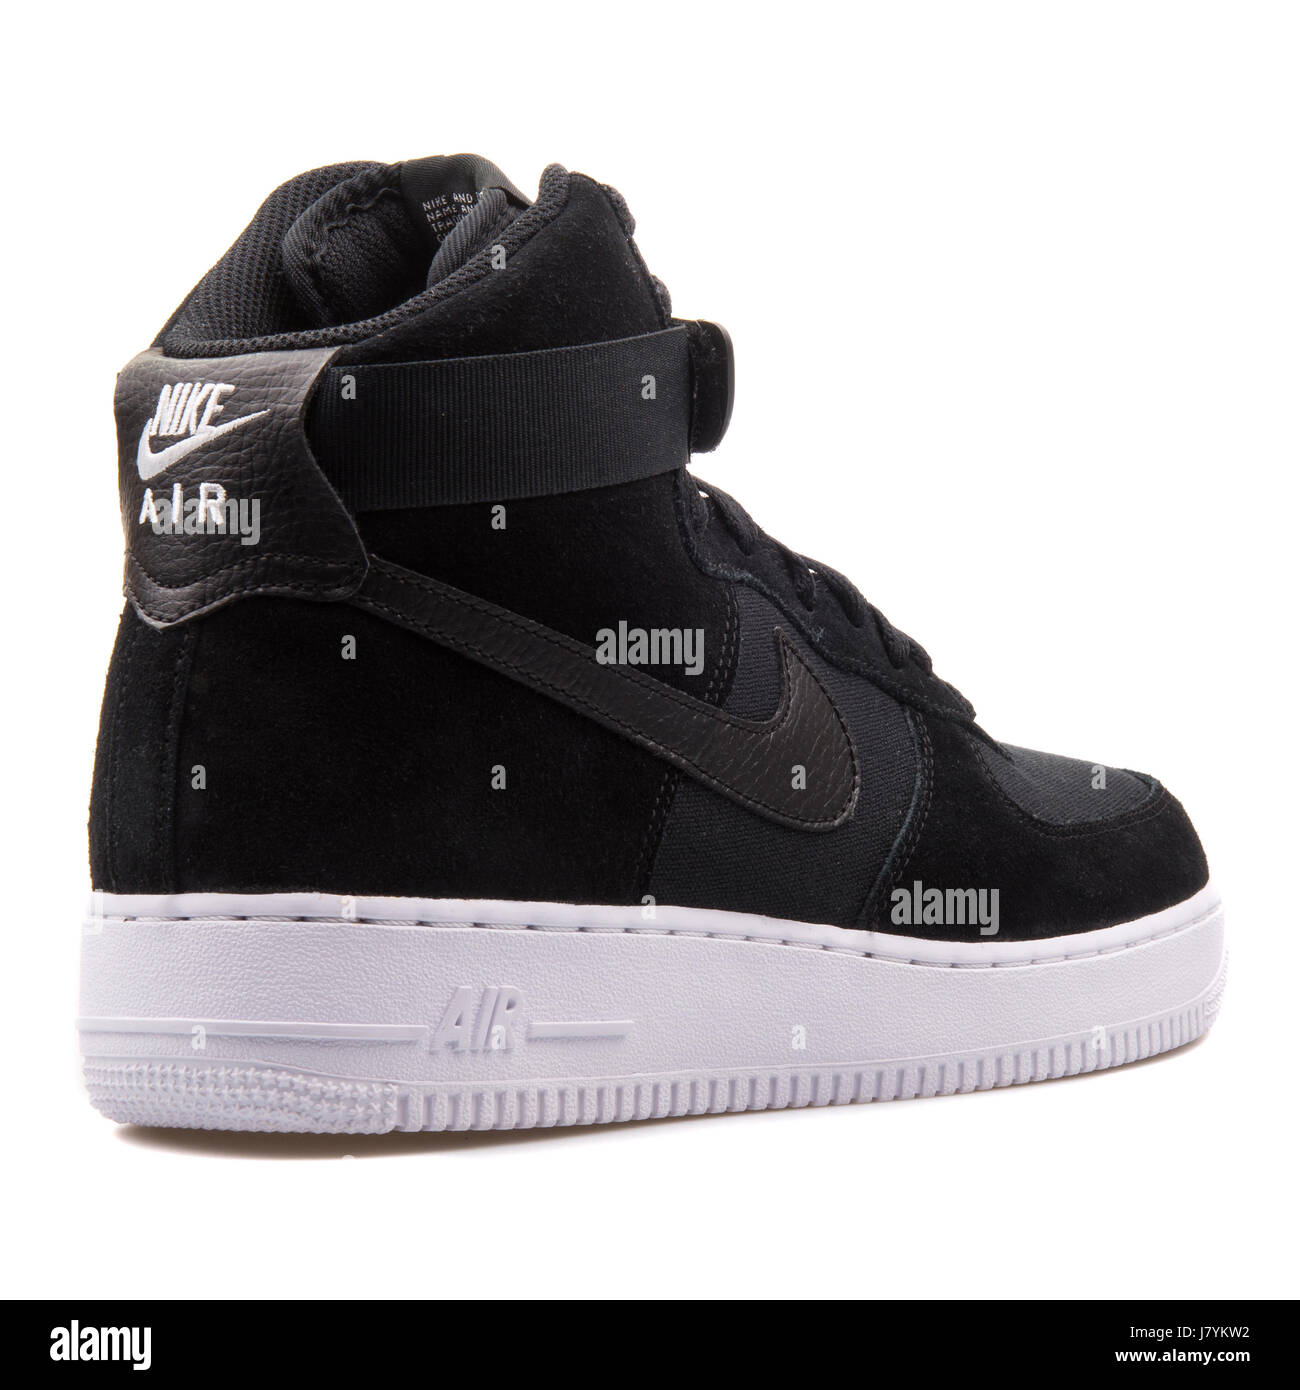 reputable site c52d5 544df Nike Air Force 1 High  07 Black Men Leather Sneakers - 315121-033 -